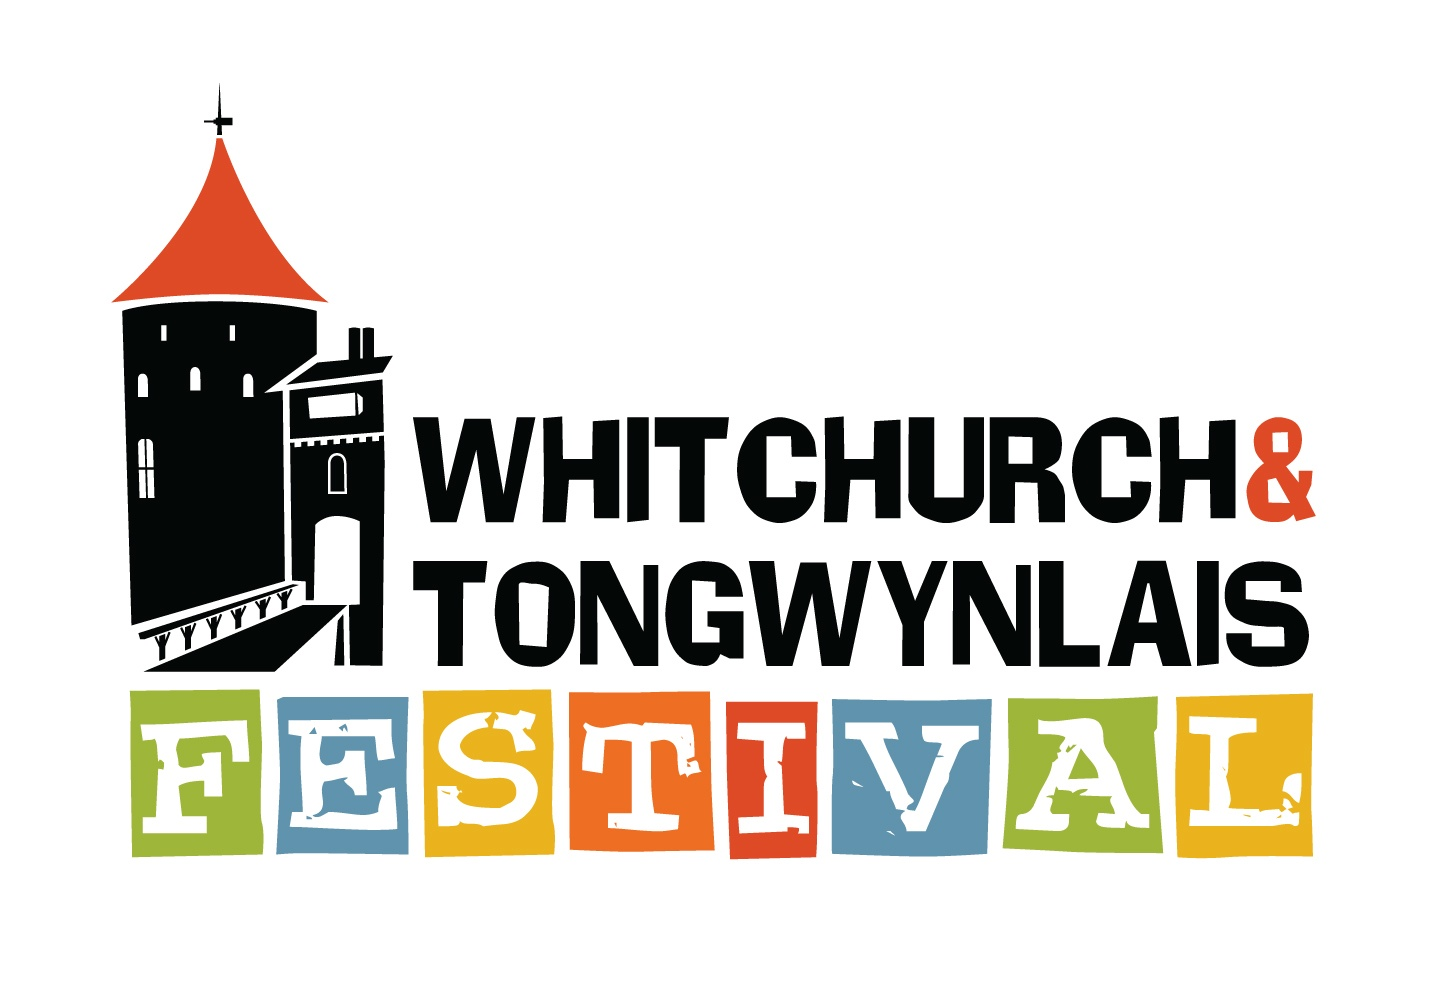 Whitchurch & Tongwynlais Festival